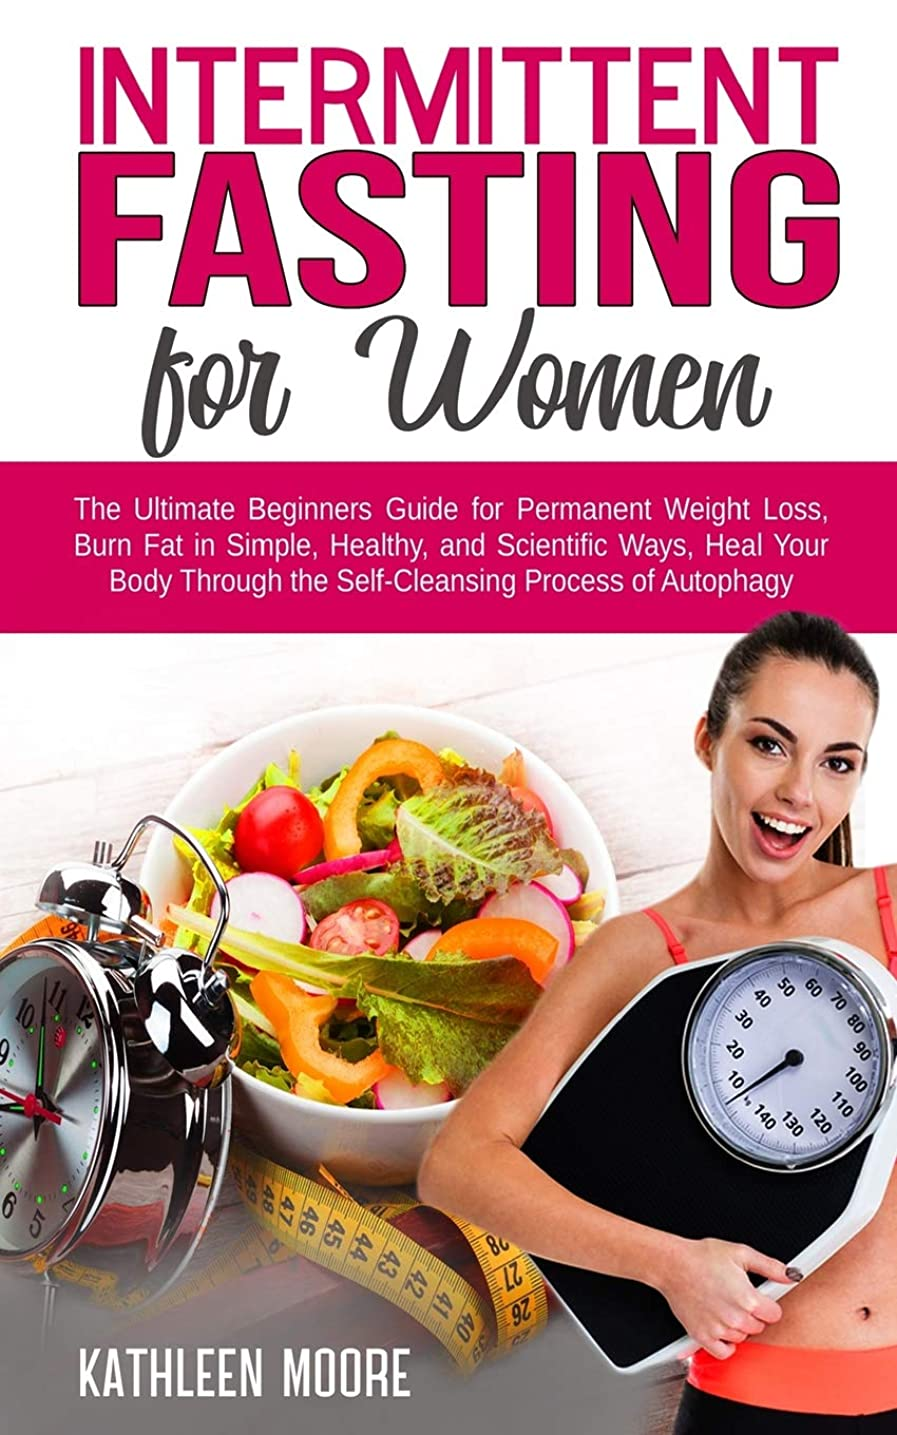 八百屋クーポン慎重Intermittent Fasting for women: The Ultimate Beginners Guide for Permanent Weight Loss, Burn Fat in Simple, Healthy, and Scientific Ways, Heal Your Body Through the Self-Cleansing Process of Autophagy